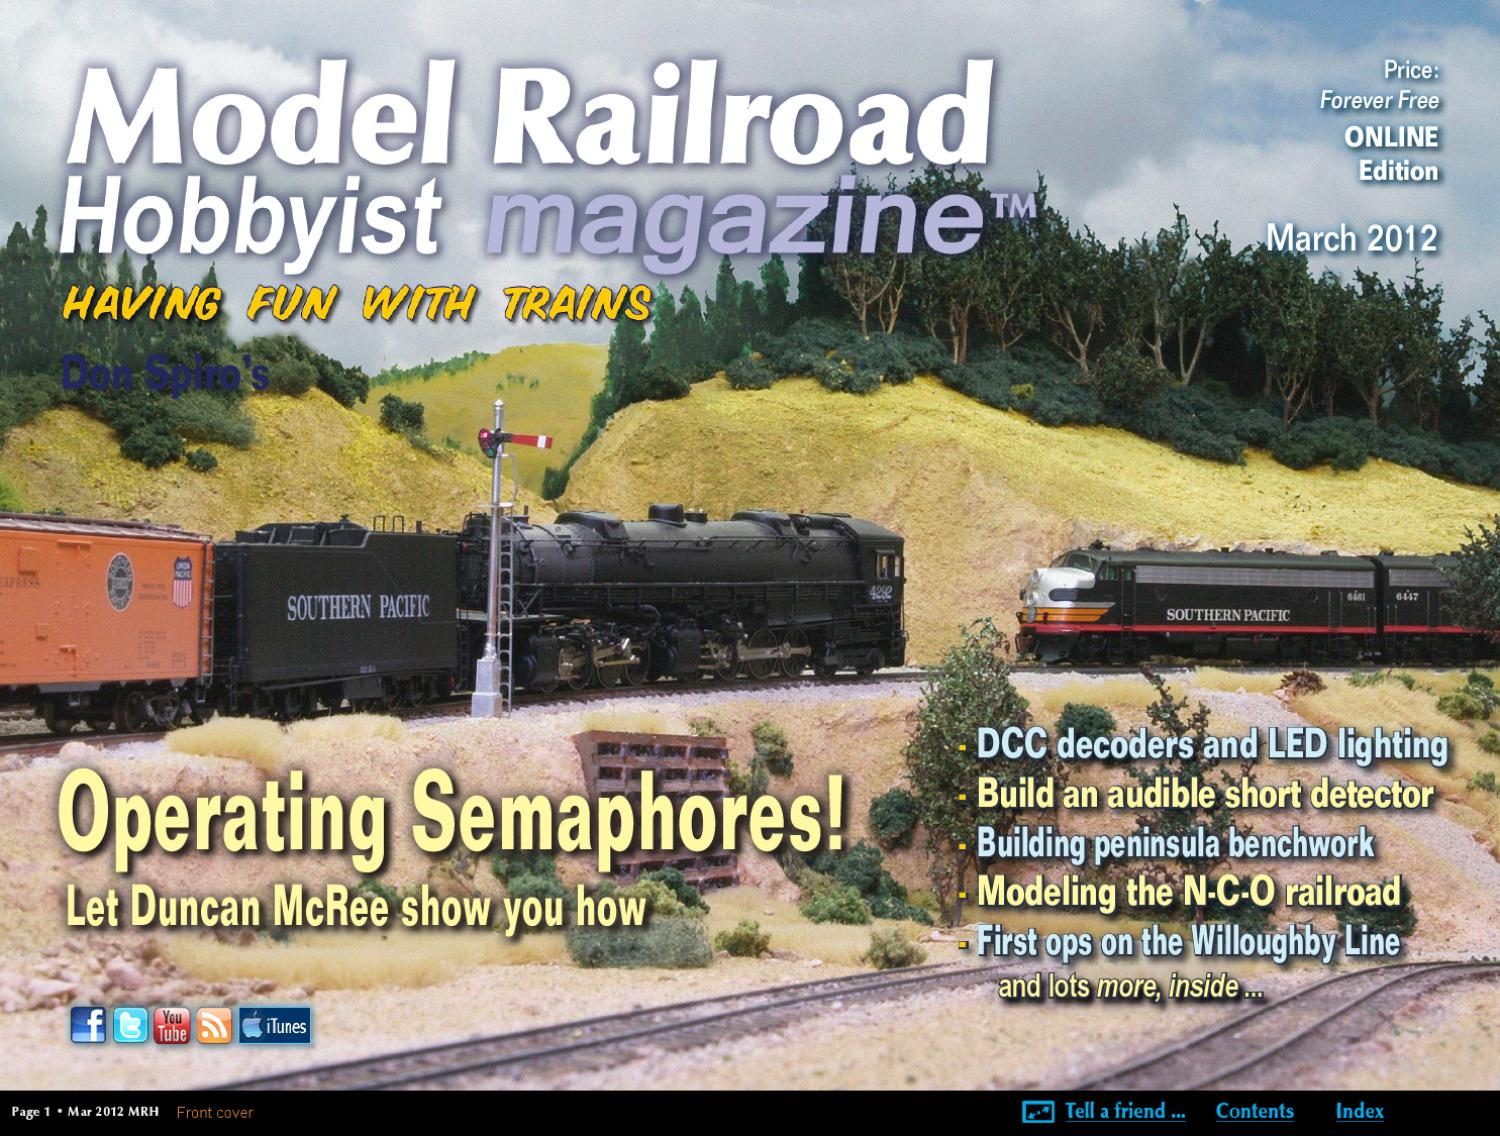 Mrh Mar 2012 Issue 25 By Model Railroad Hobbyist Magazine Issuu Trains Atlas Wiring Train Turntable